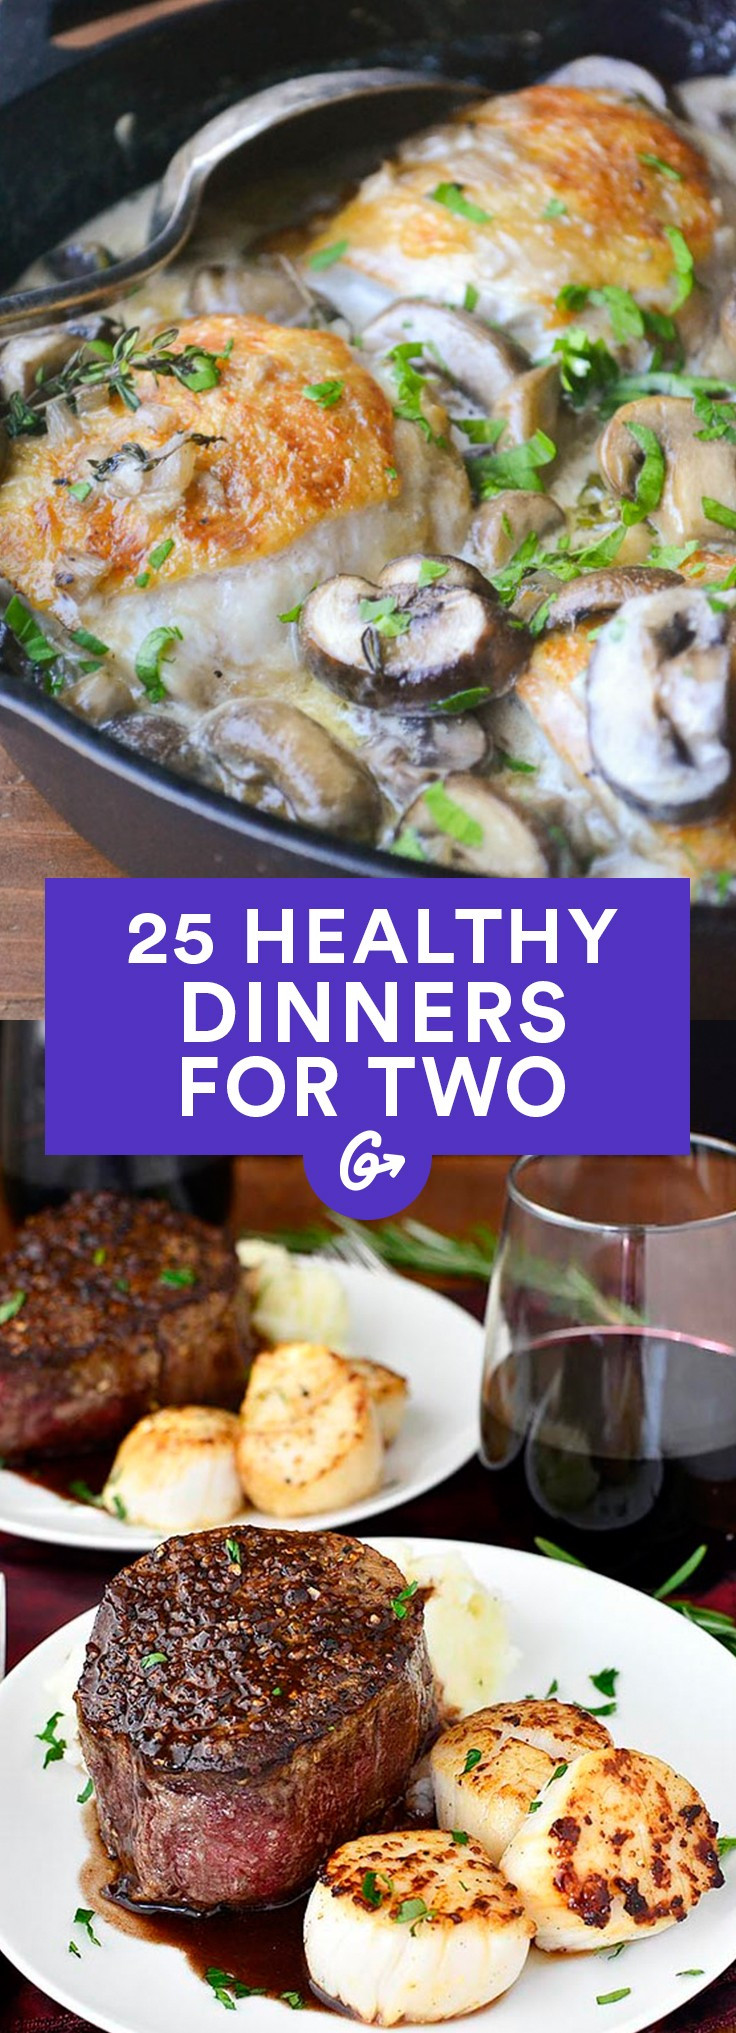 Healthy Meal Ideas For Dinner  Healthy Dinner Recipes for Two